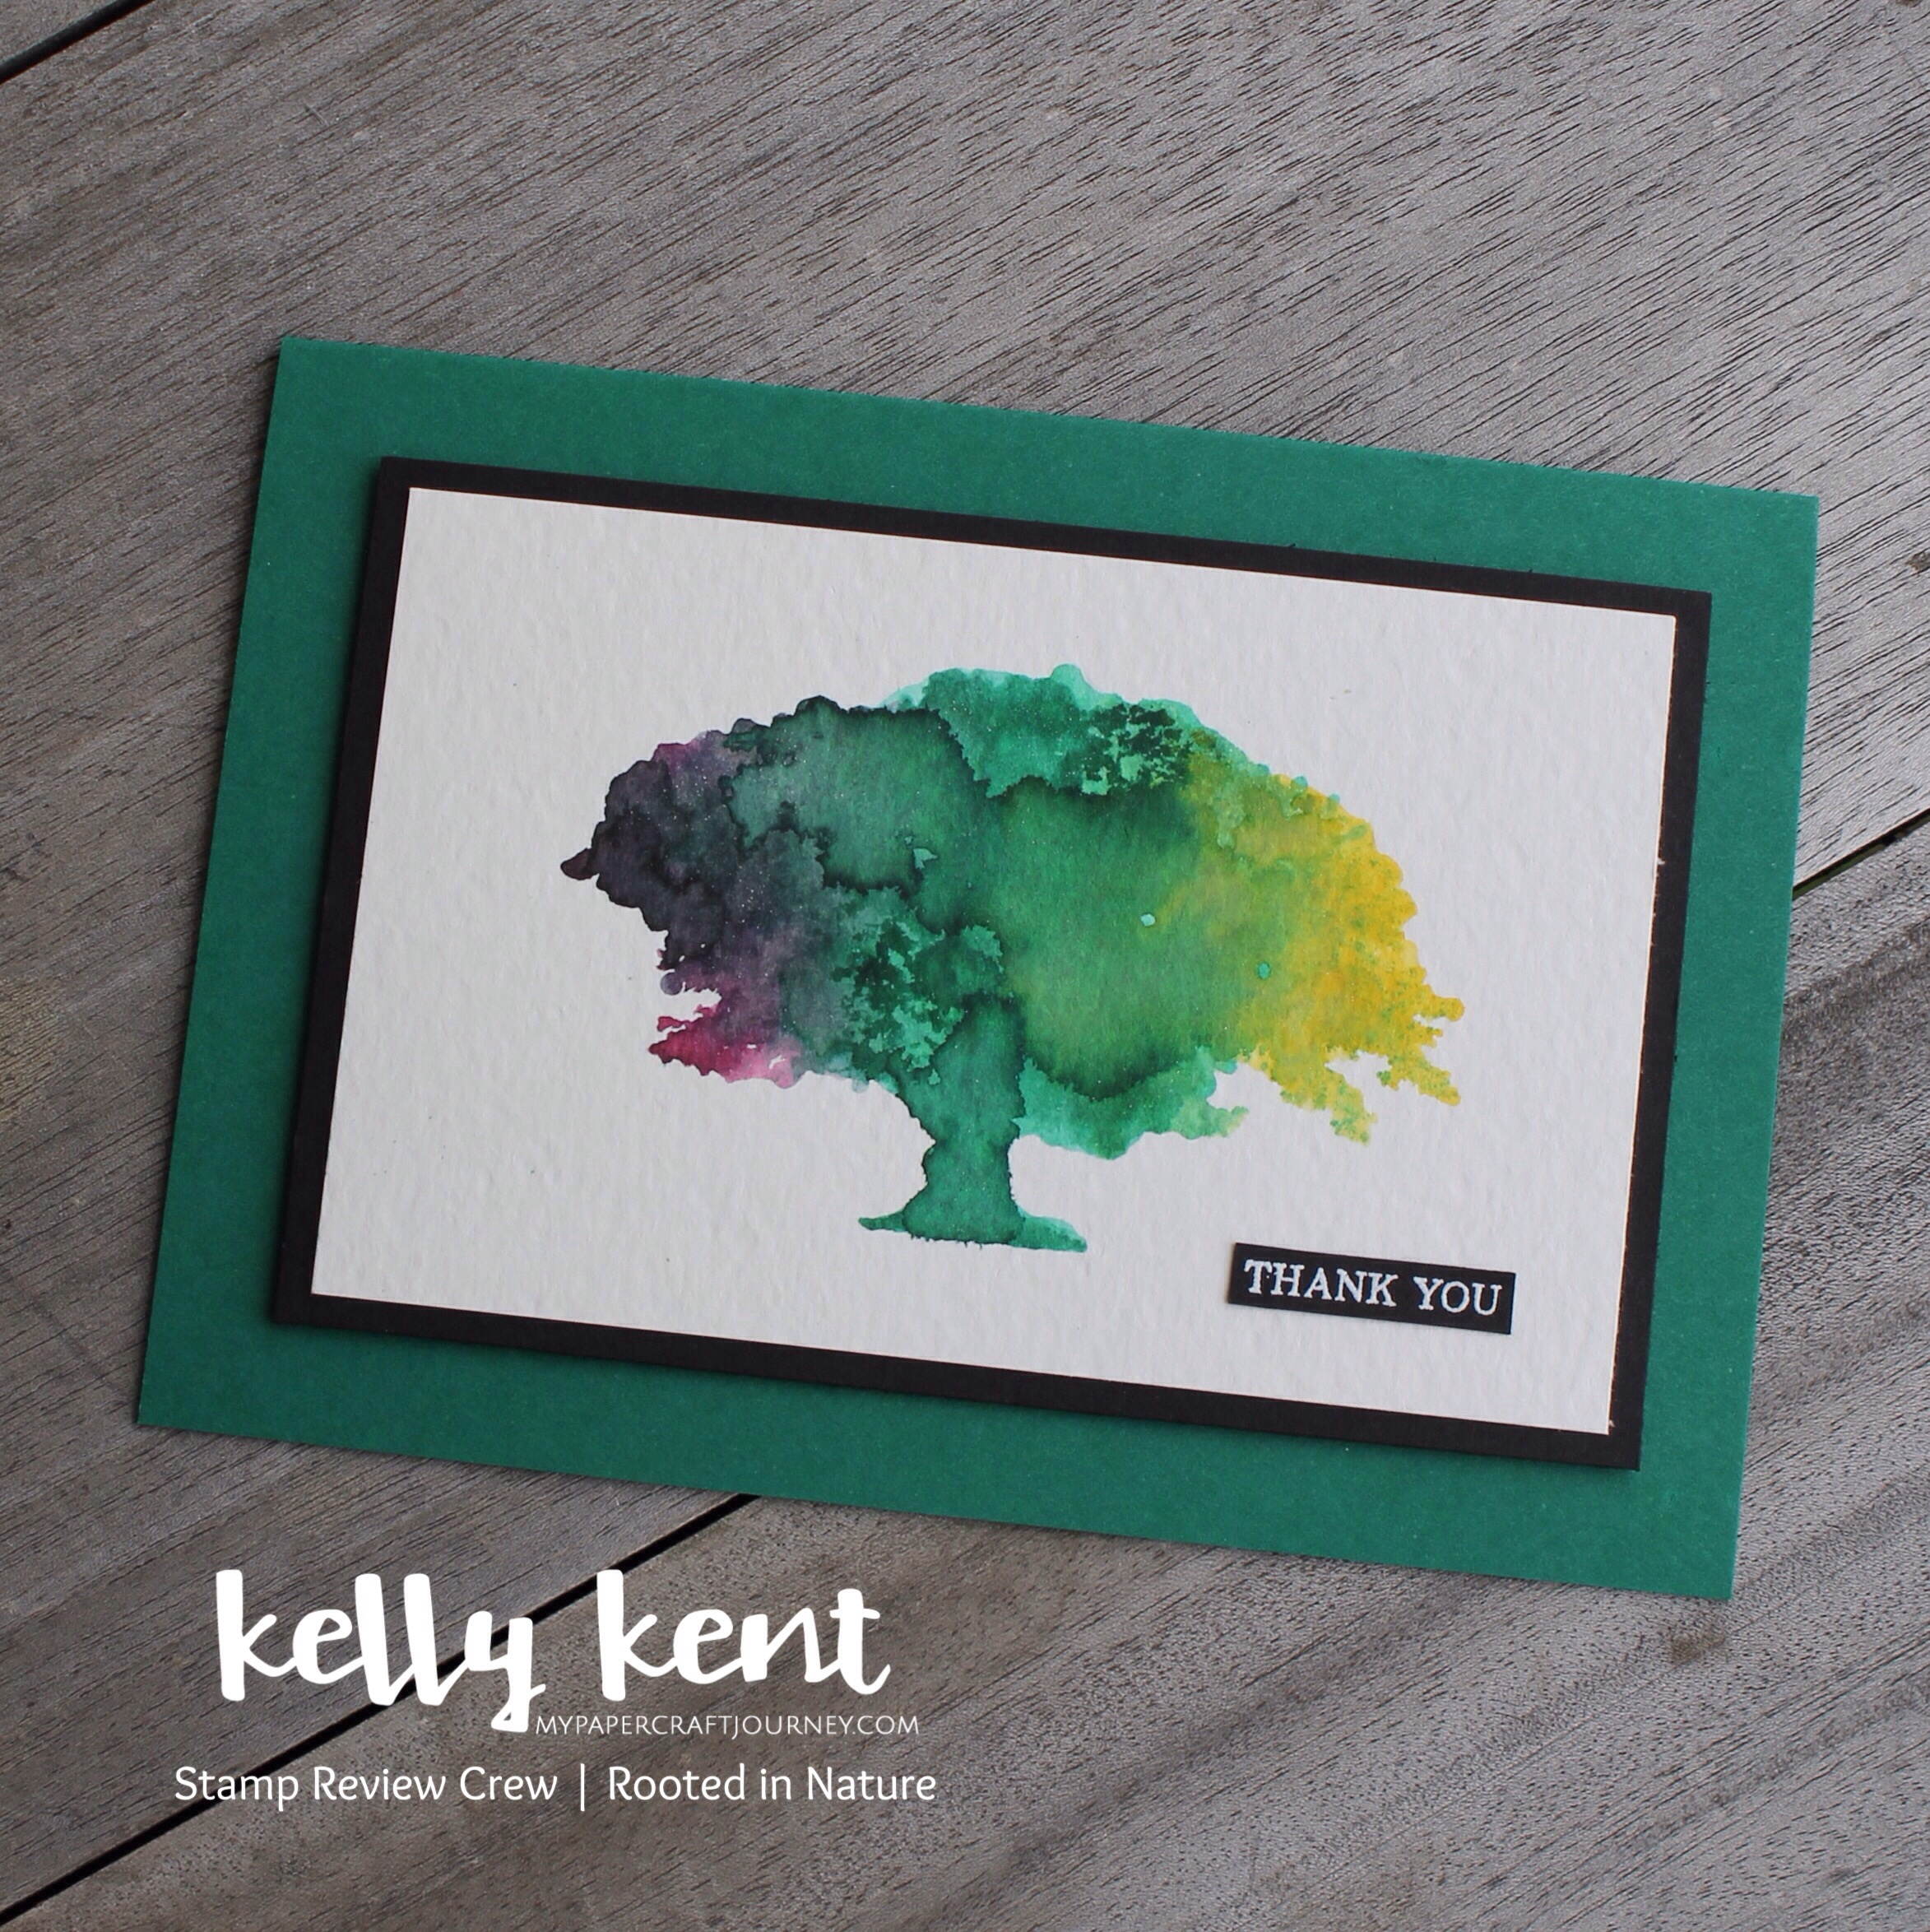 Stamp Review Crew - Rooted in Nature   kelly kent